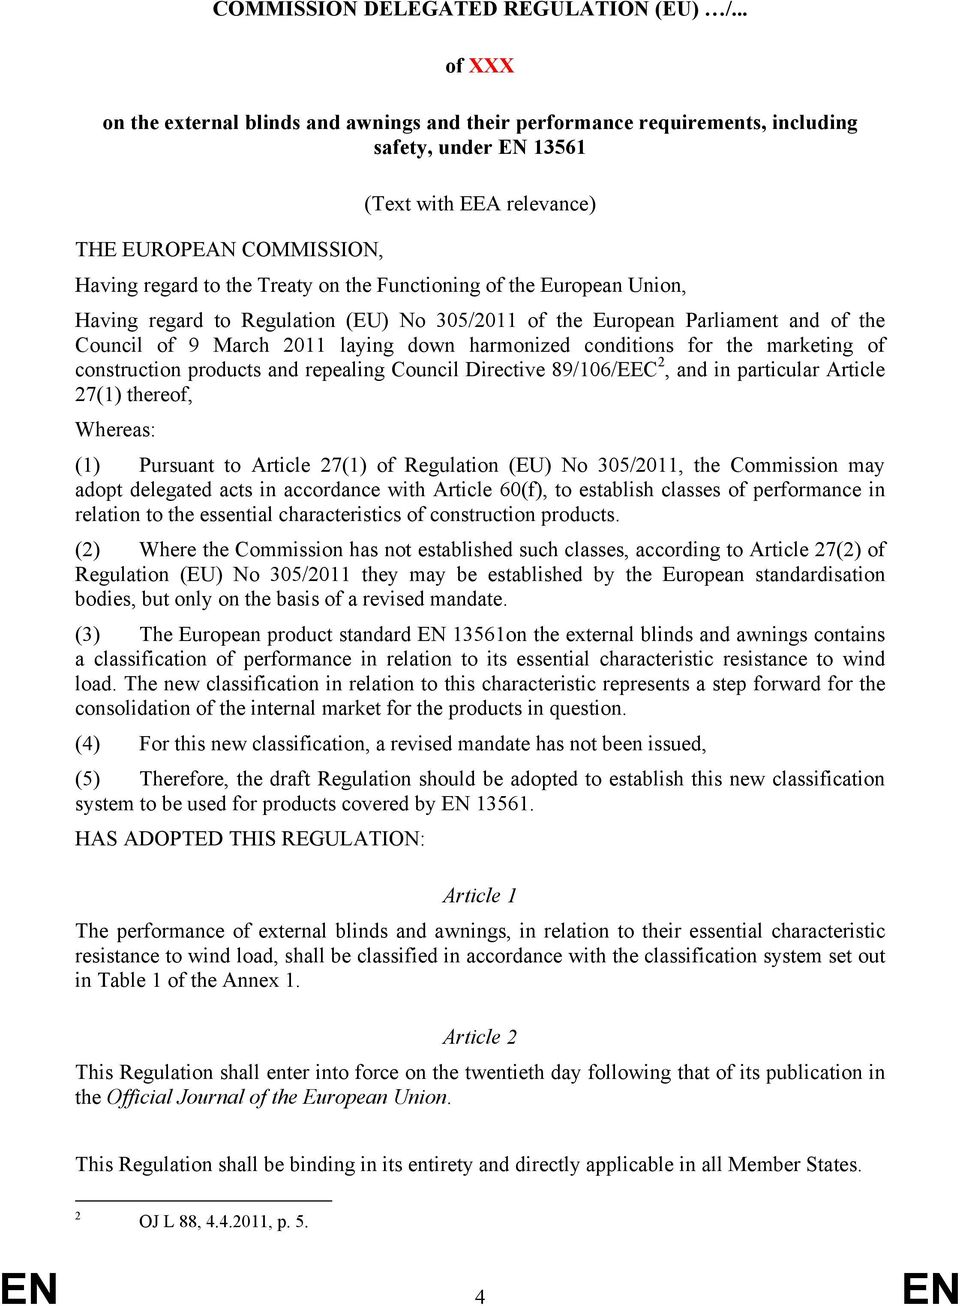 Functioning of the European Union, Having regard to Regulation (EU) No 305/2011 of the European Parliament and of the Council of 9 March 2011 laying down harmonized conditions for the marketing of